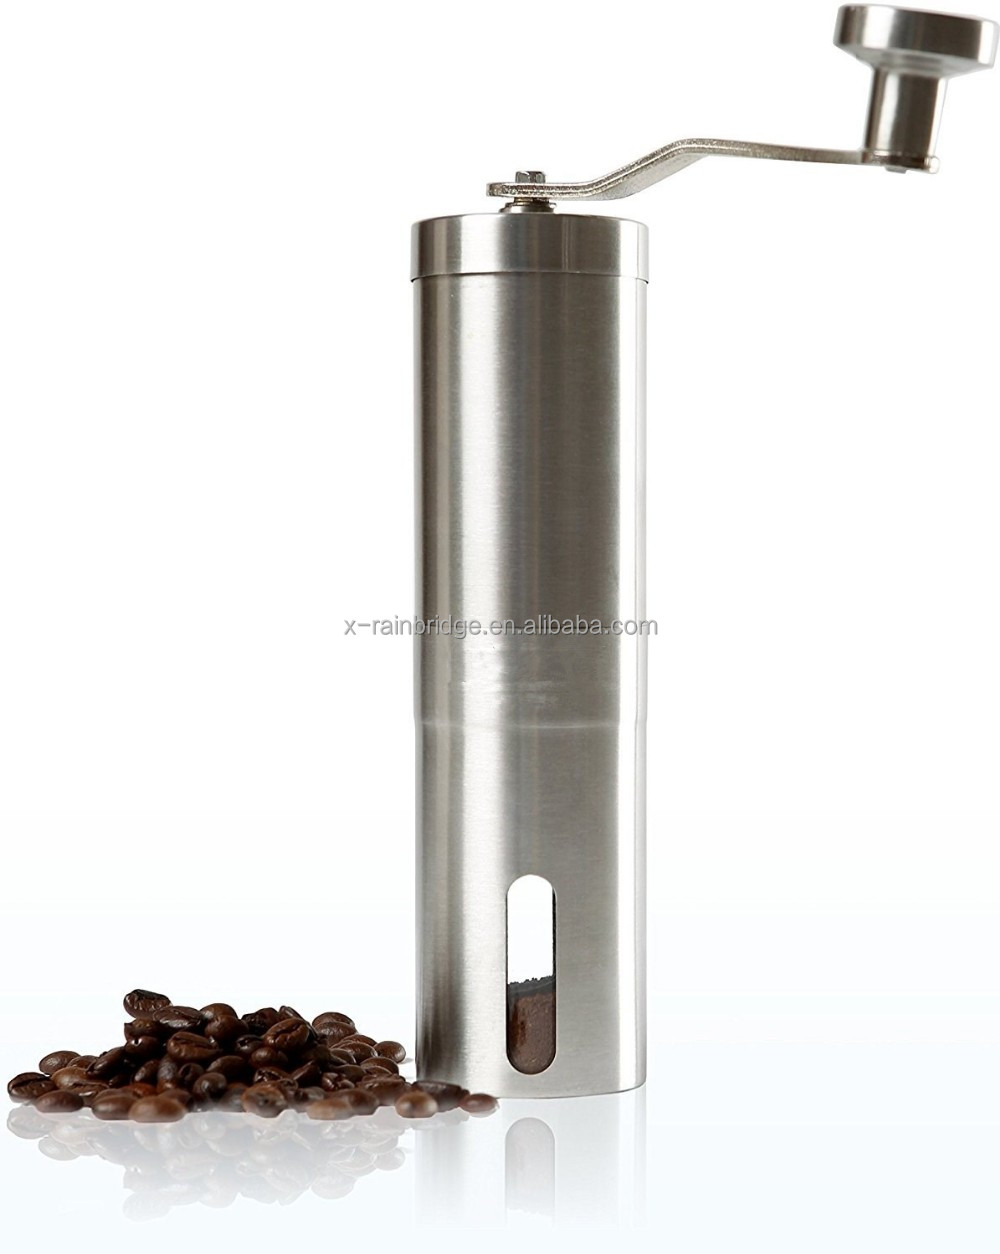 Manual Coffee Grinder Portable Slim Ceramic Burr Spice Mill, manufacture in China